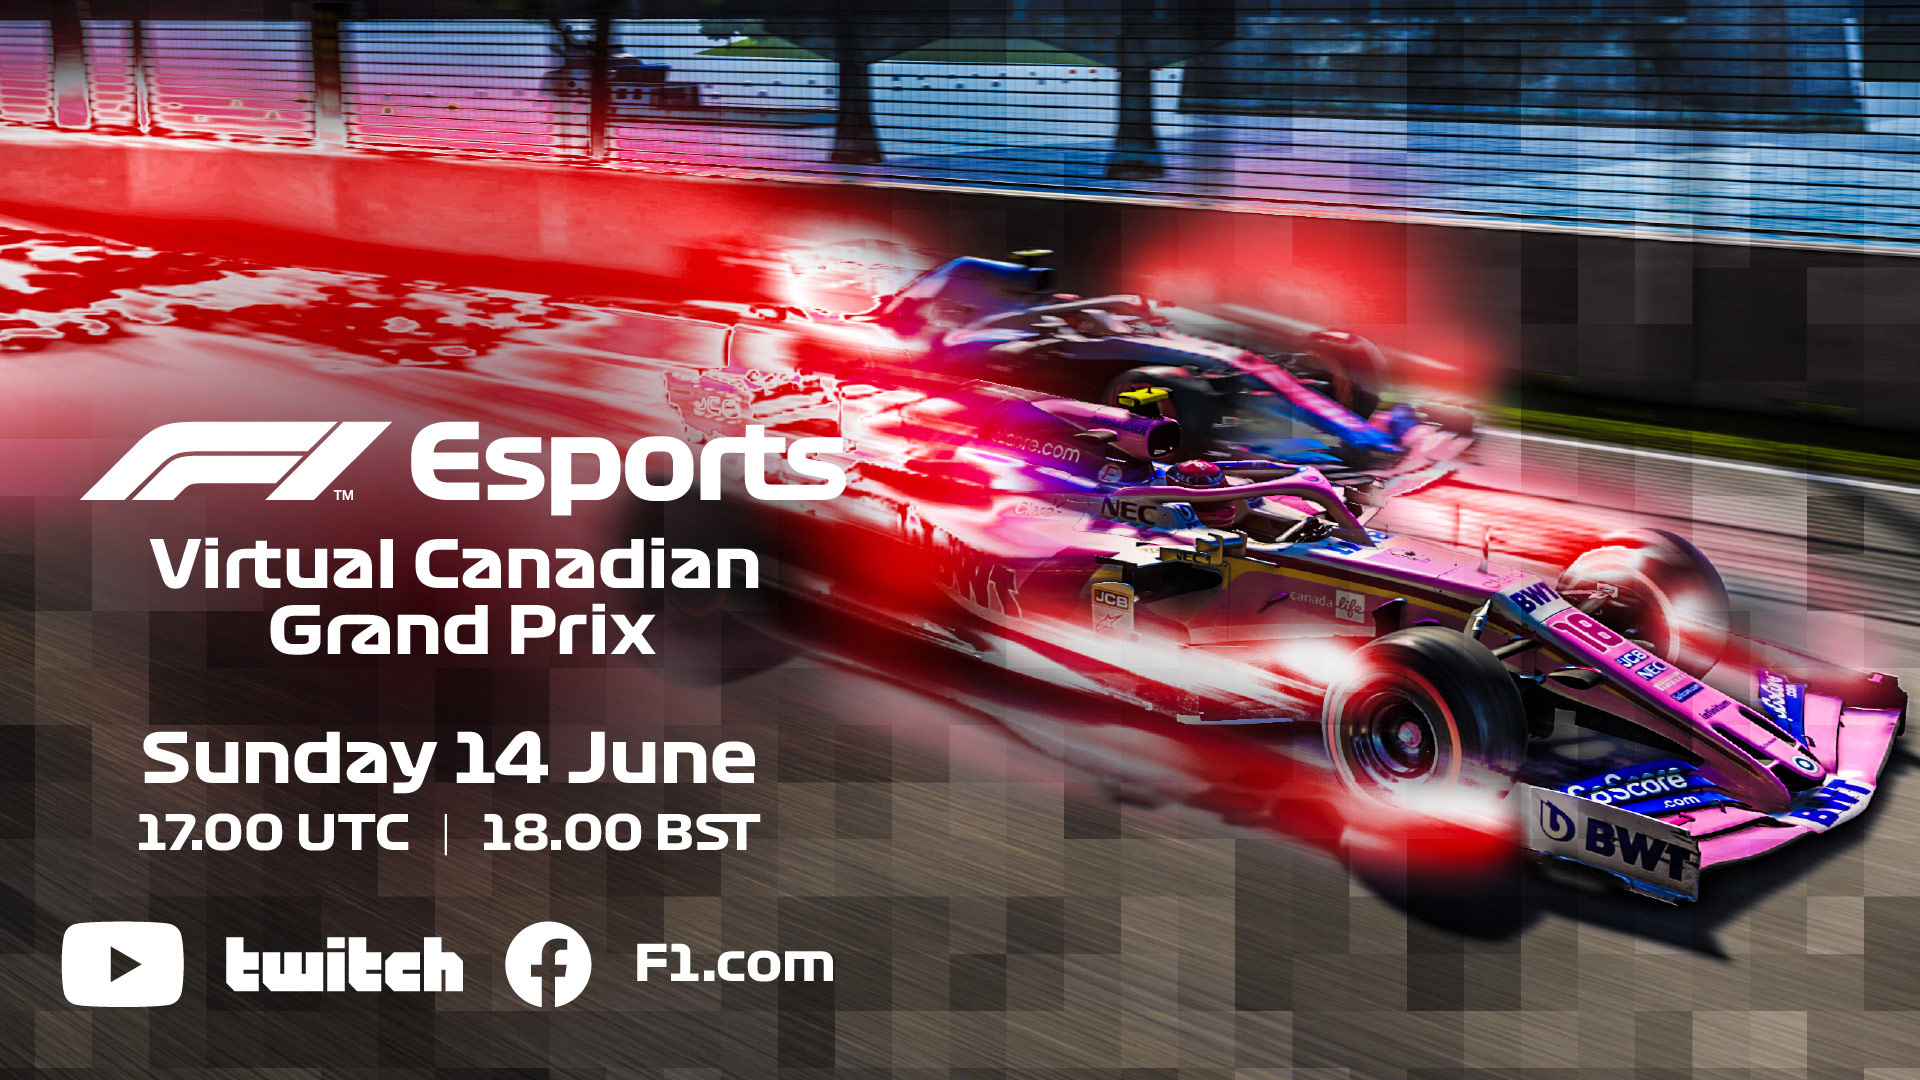 Virtual Canadian Grand Prix: Five F1 drivers on the grid